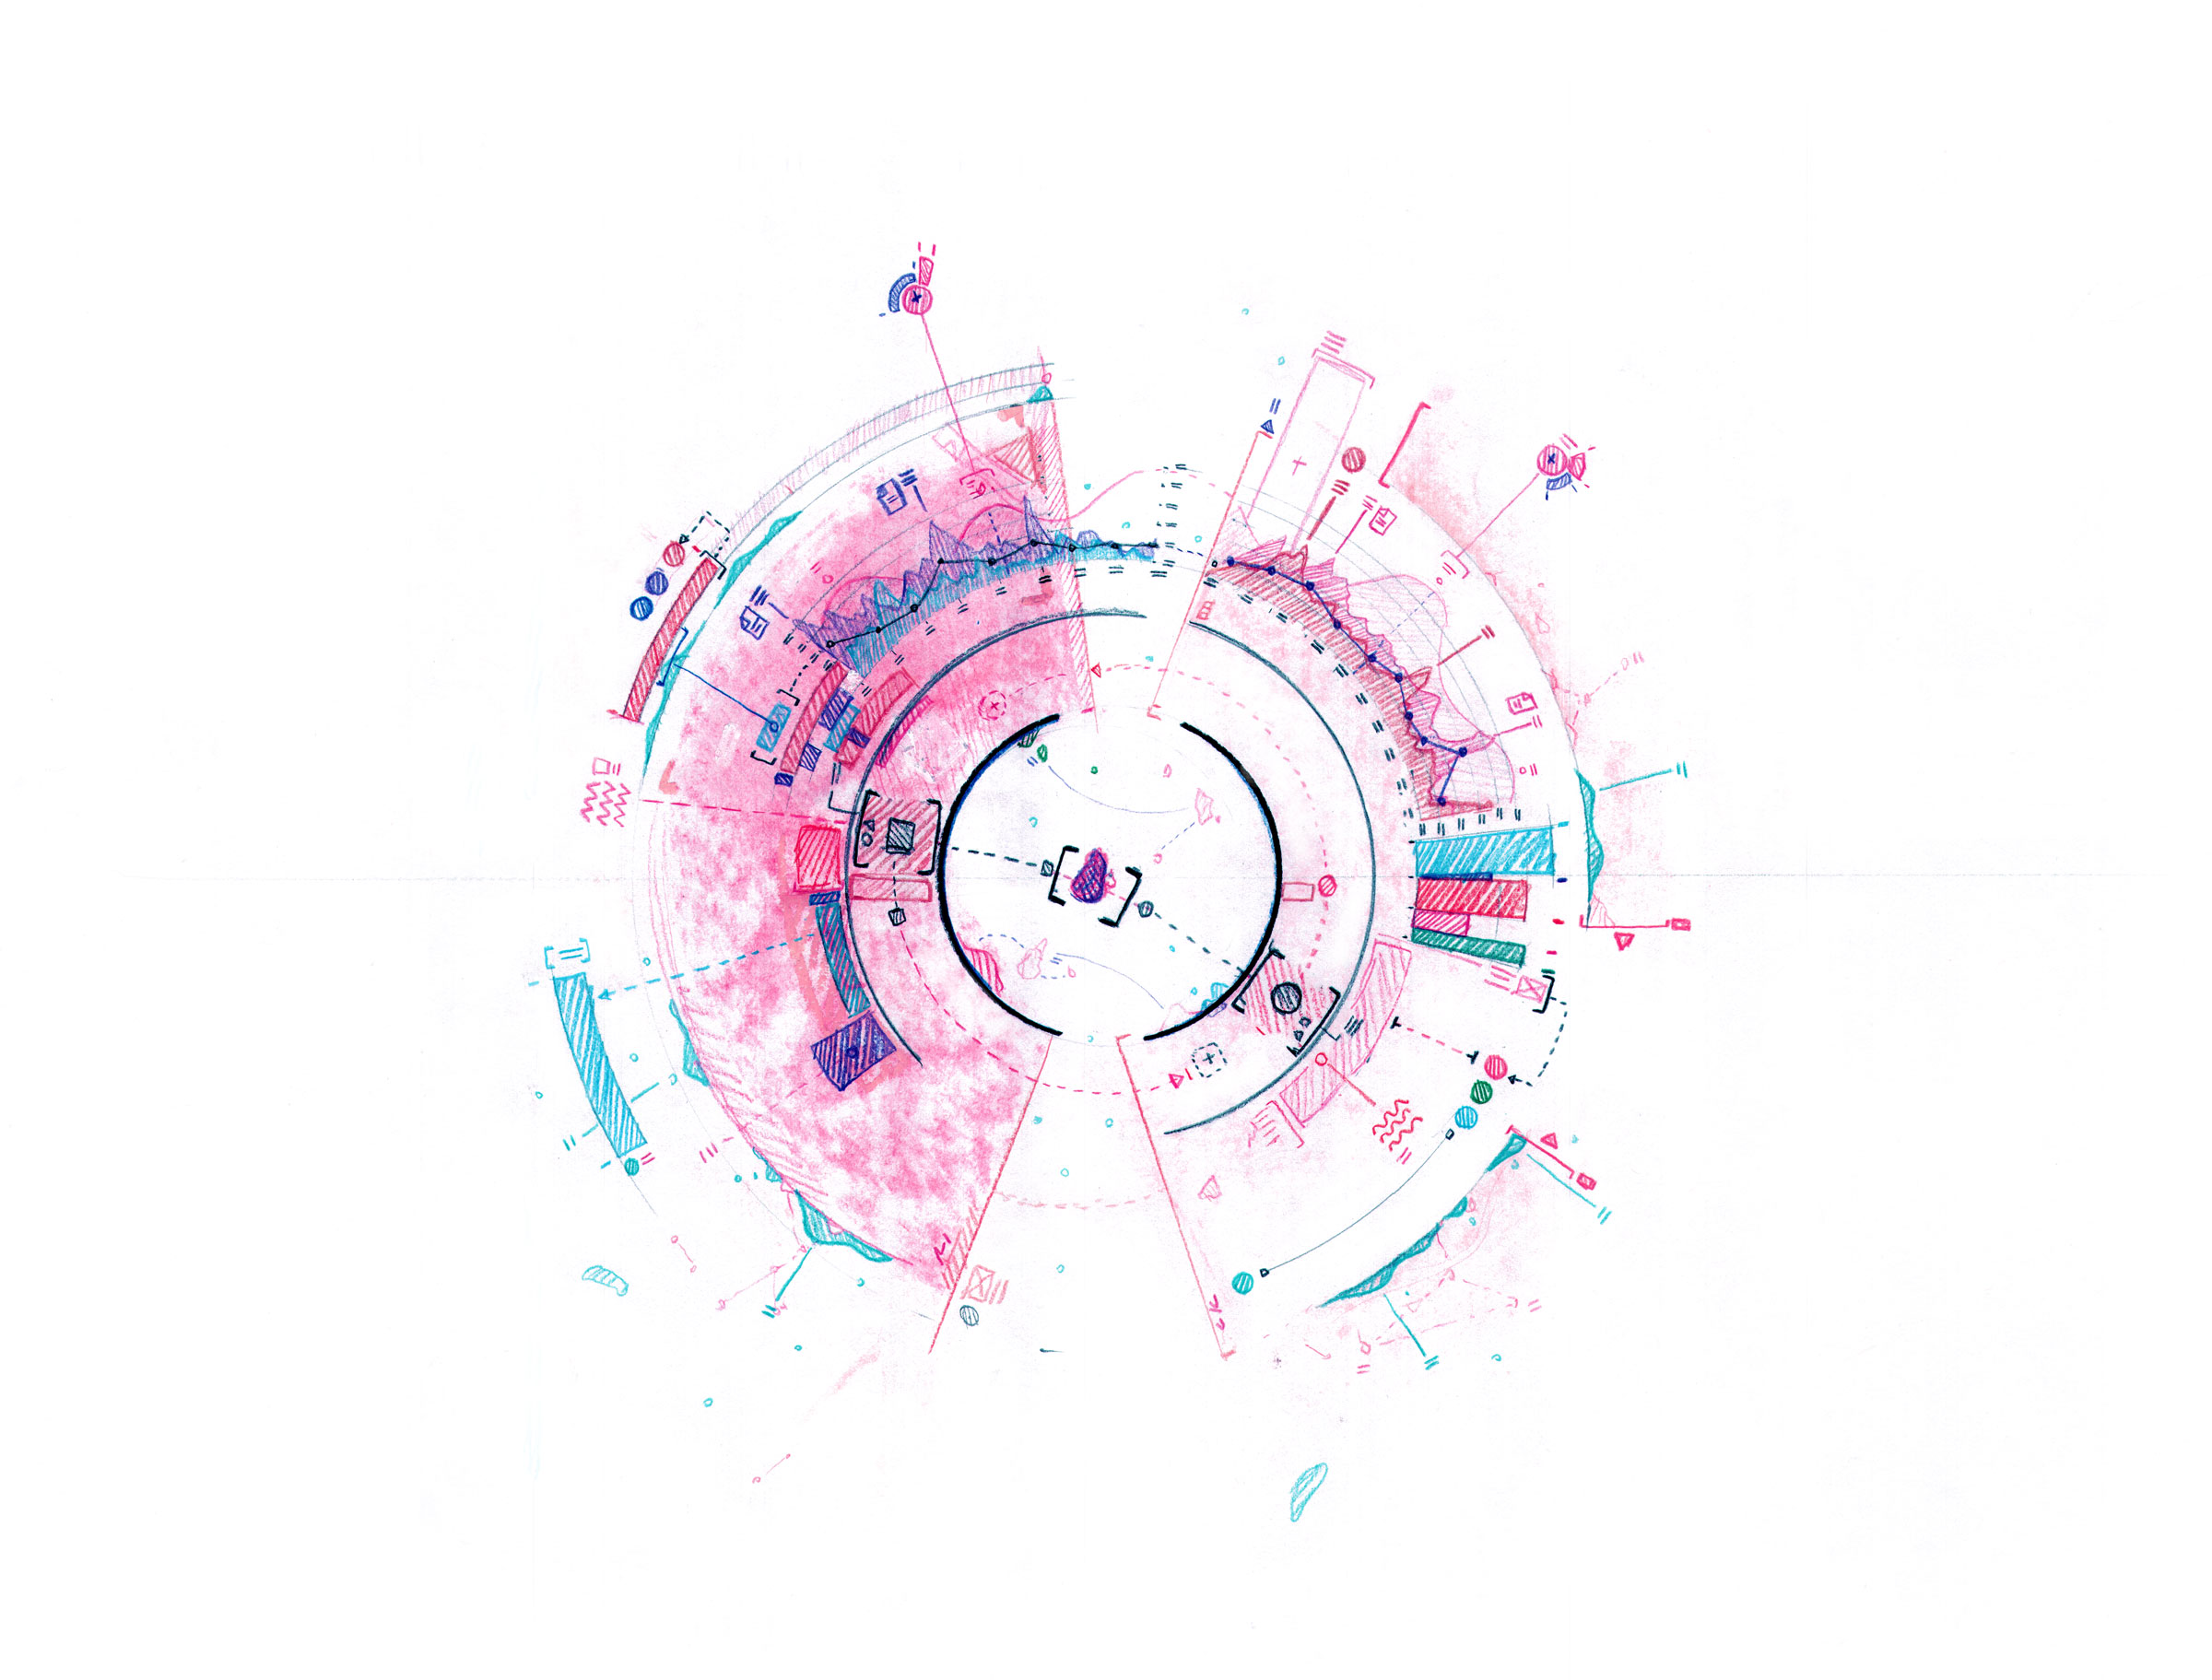 A illustration with pinks, blues, teals, and greens depicting a radial graph with various bar, line and dot charts surrounding the circle. Around the outside are scribbled call-outs, shapes and more lines in an abstract representation of data.